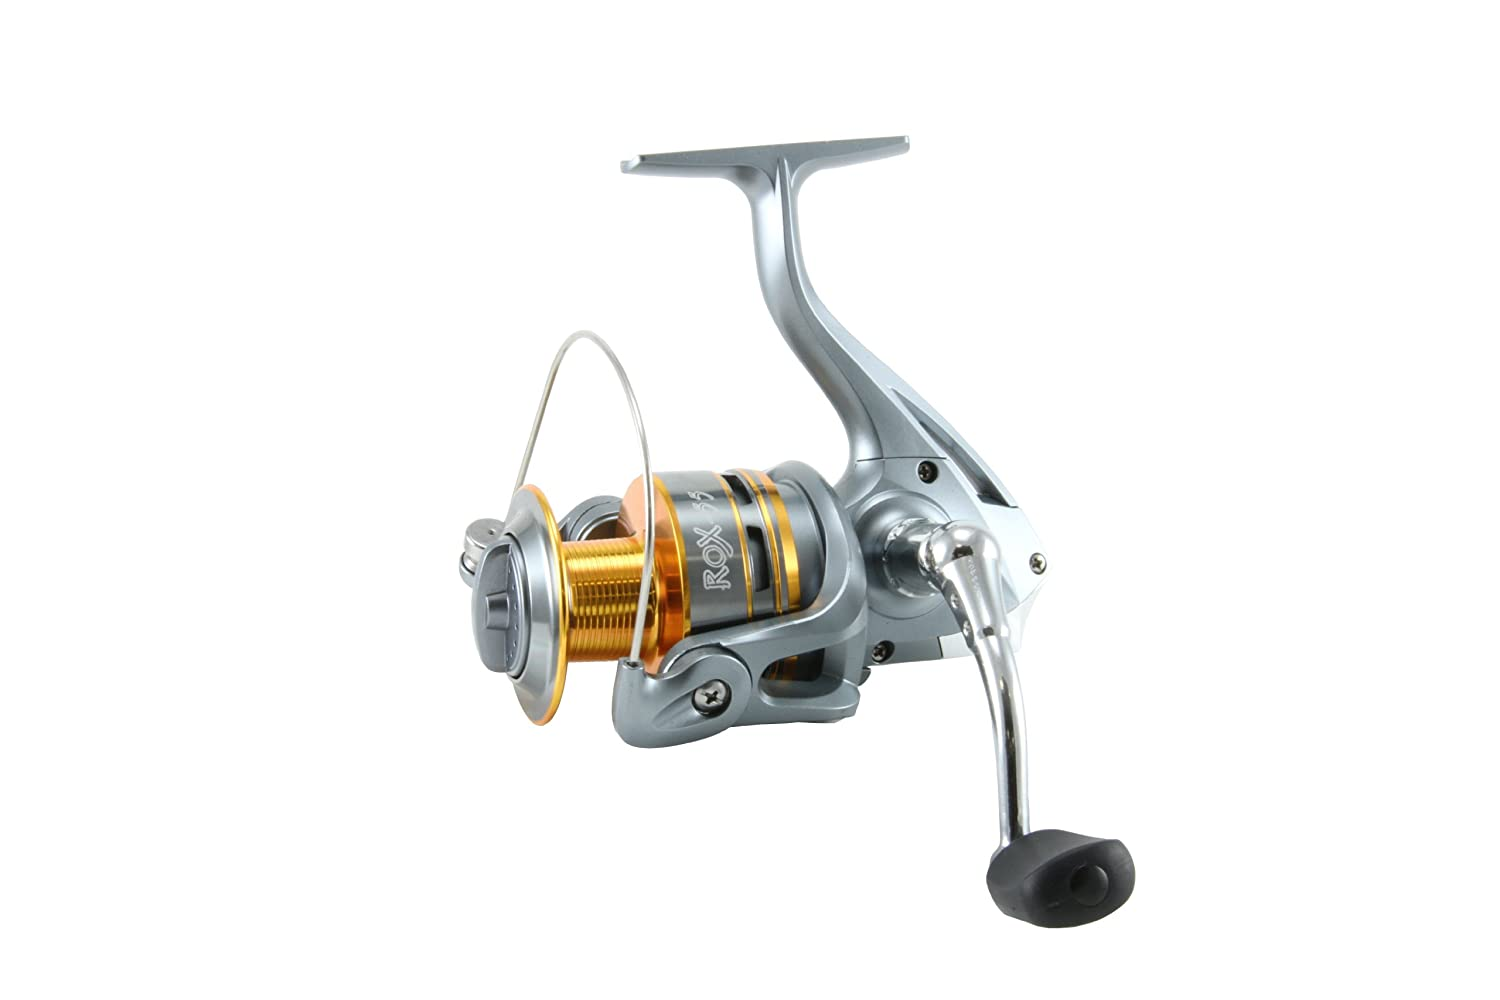 Okuma ROX-20 ROX Standard Speed Spinning Reel